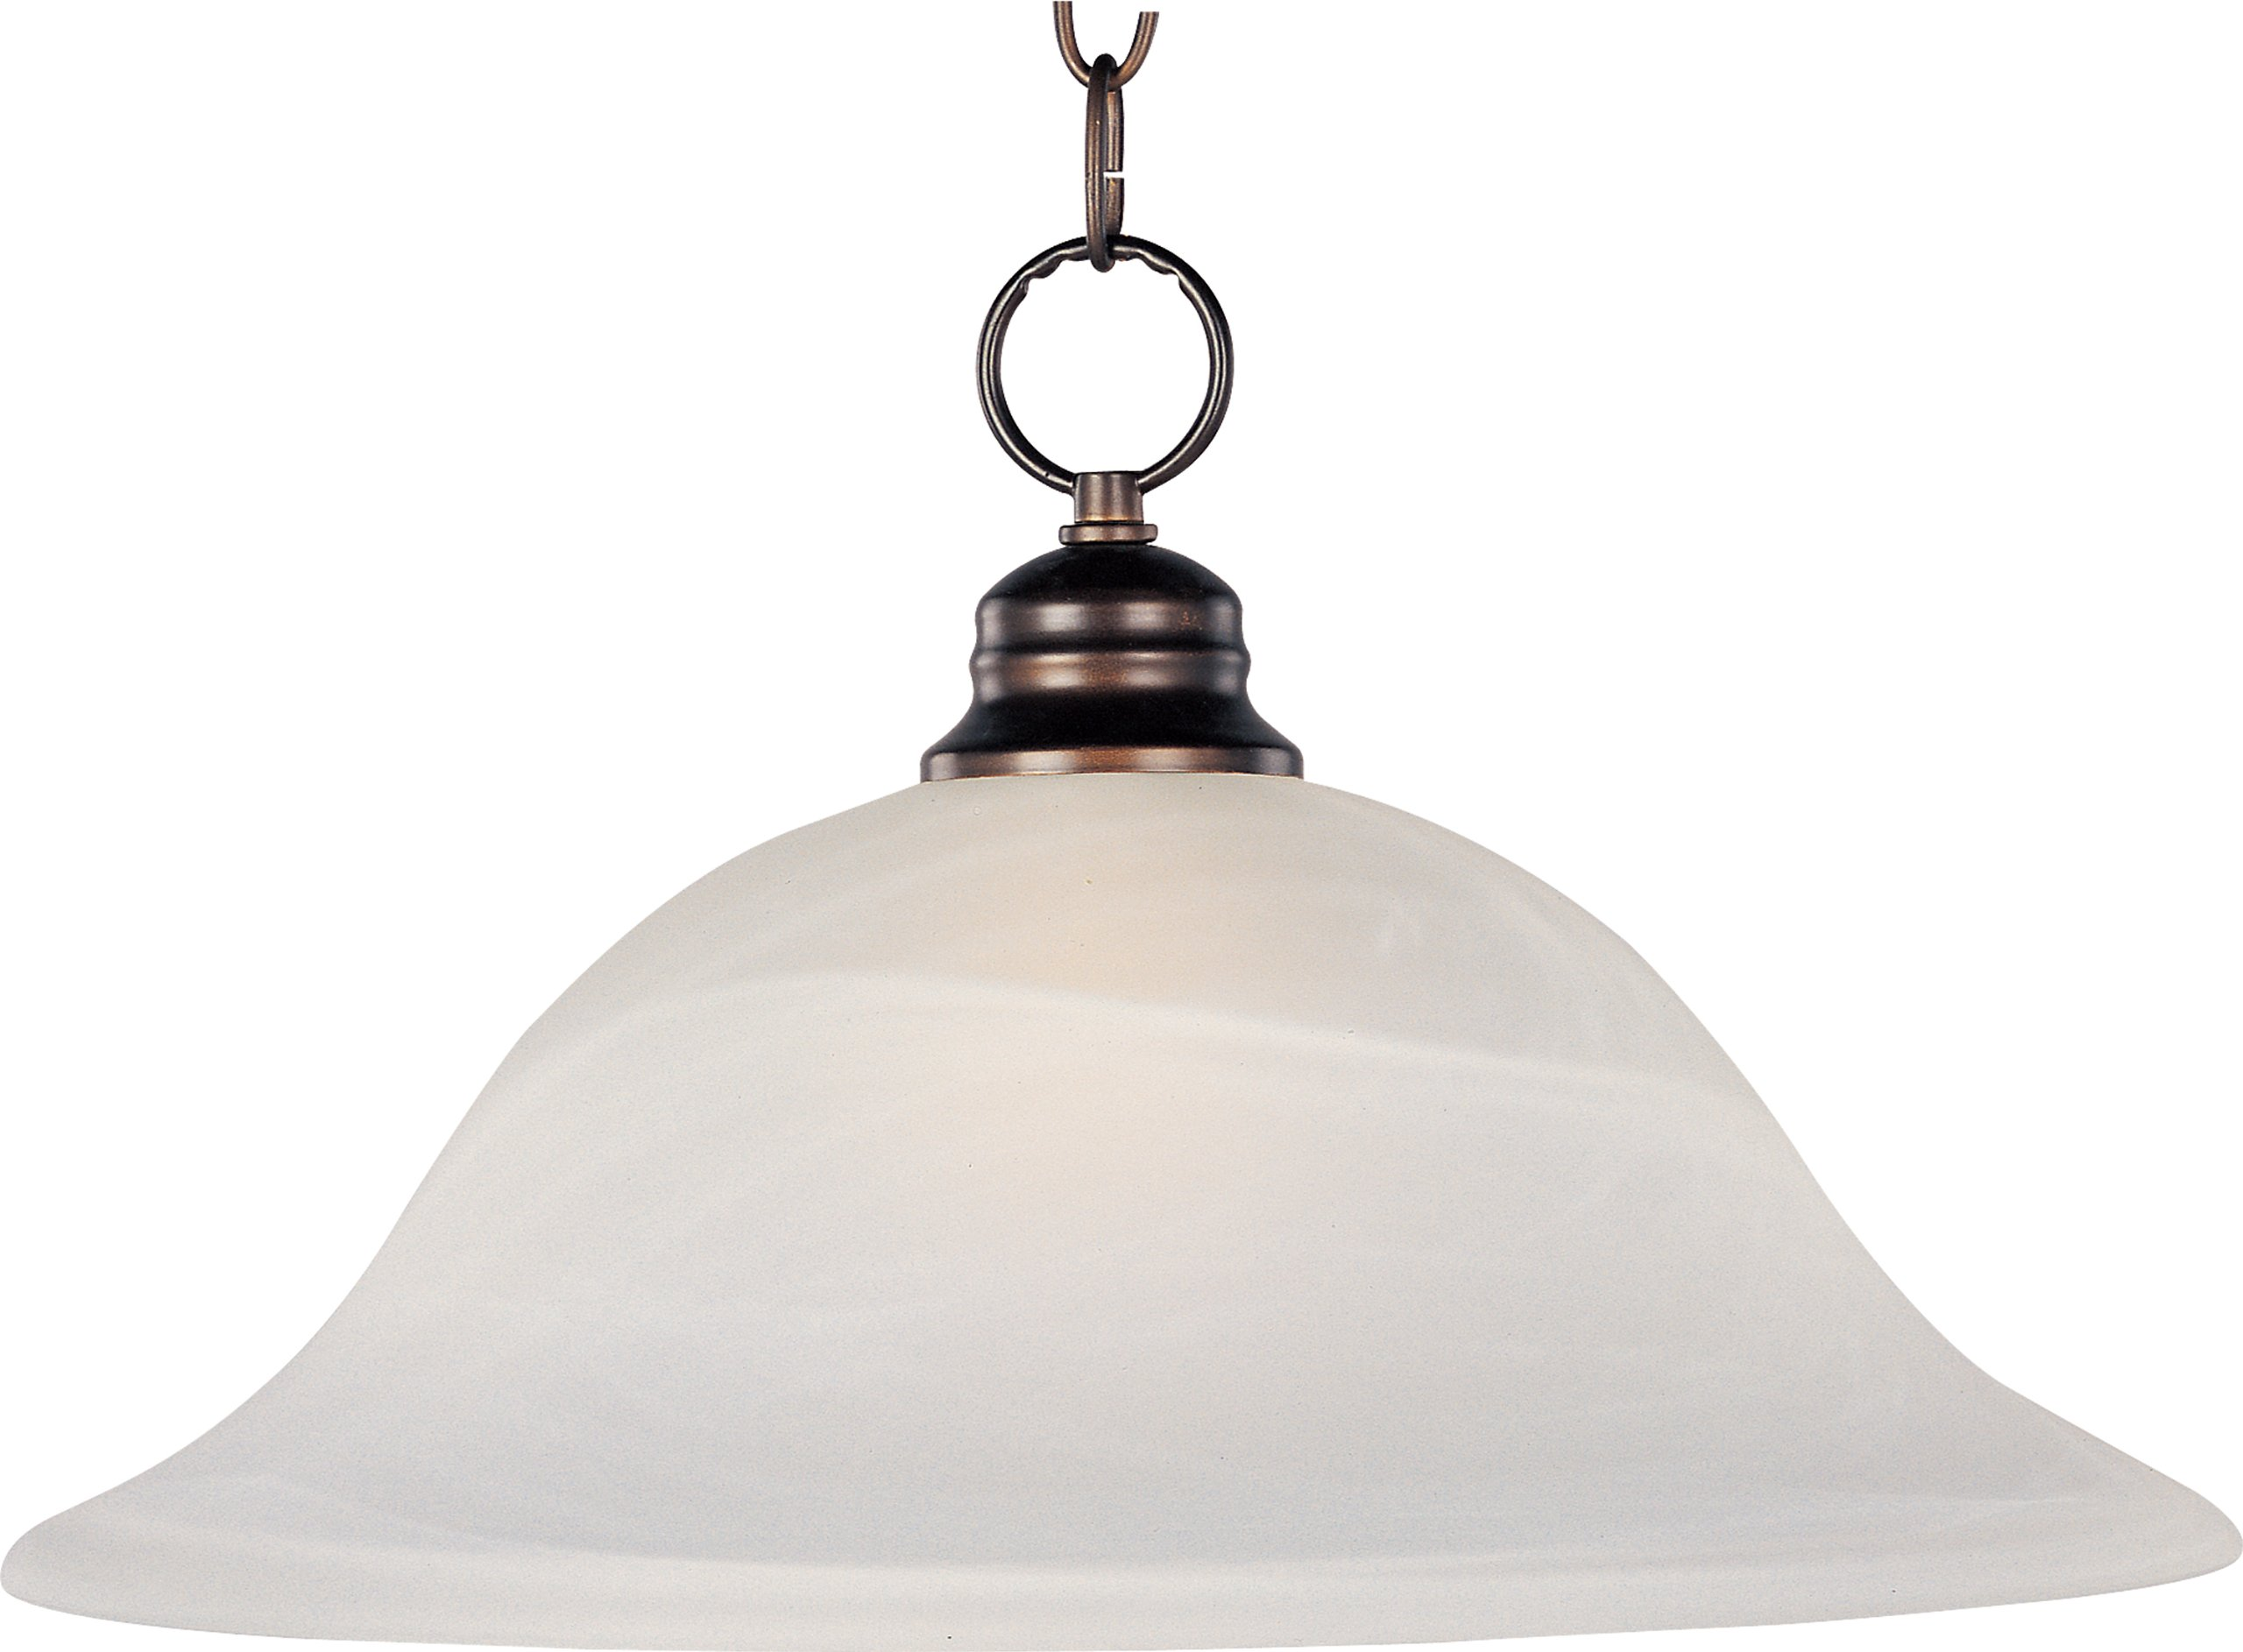 Maxim 91076MROI Essentials 1-Light Pendant, Oil Rubbed Bronze Finish, Marble Glass, MB Incandescent Incandescent Bulb , 100W Max., Damp Safety Rating, Standard Dimmable, Glass Shade Material, 8050 Rated Lumens